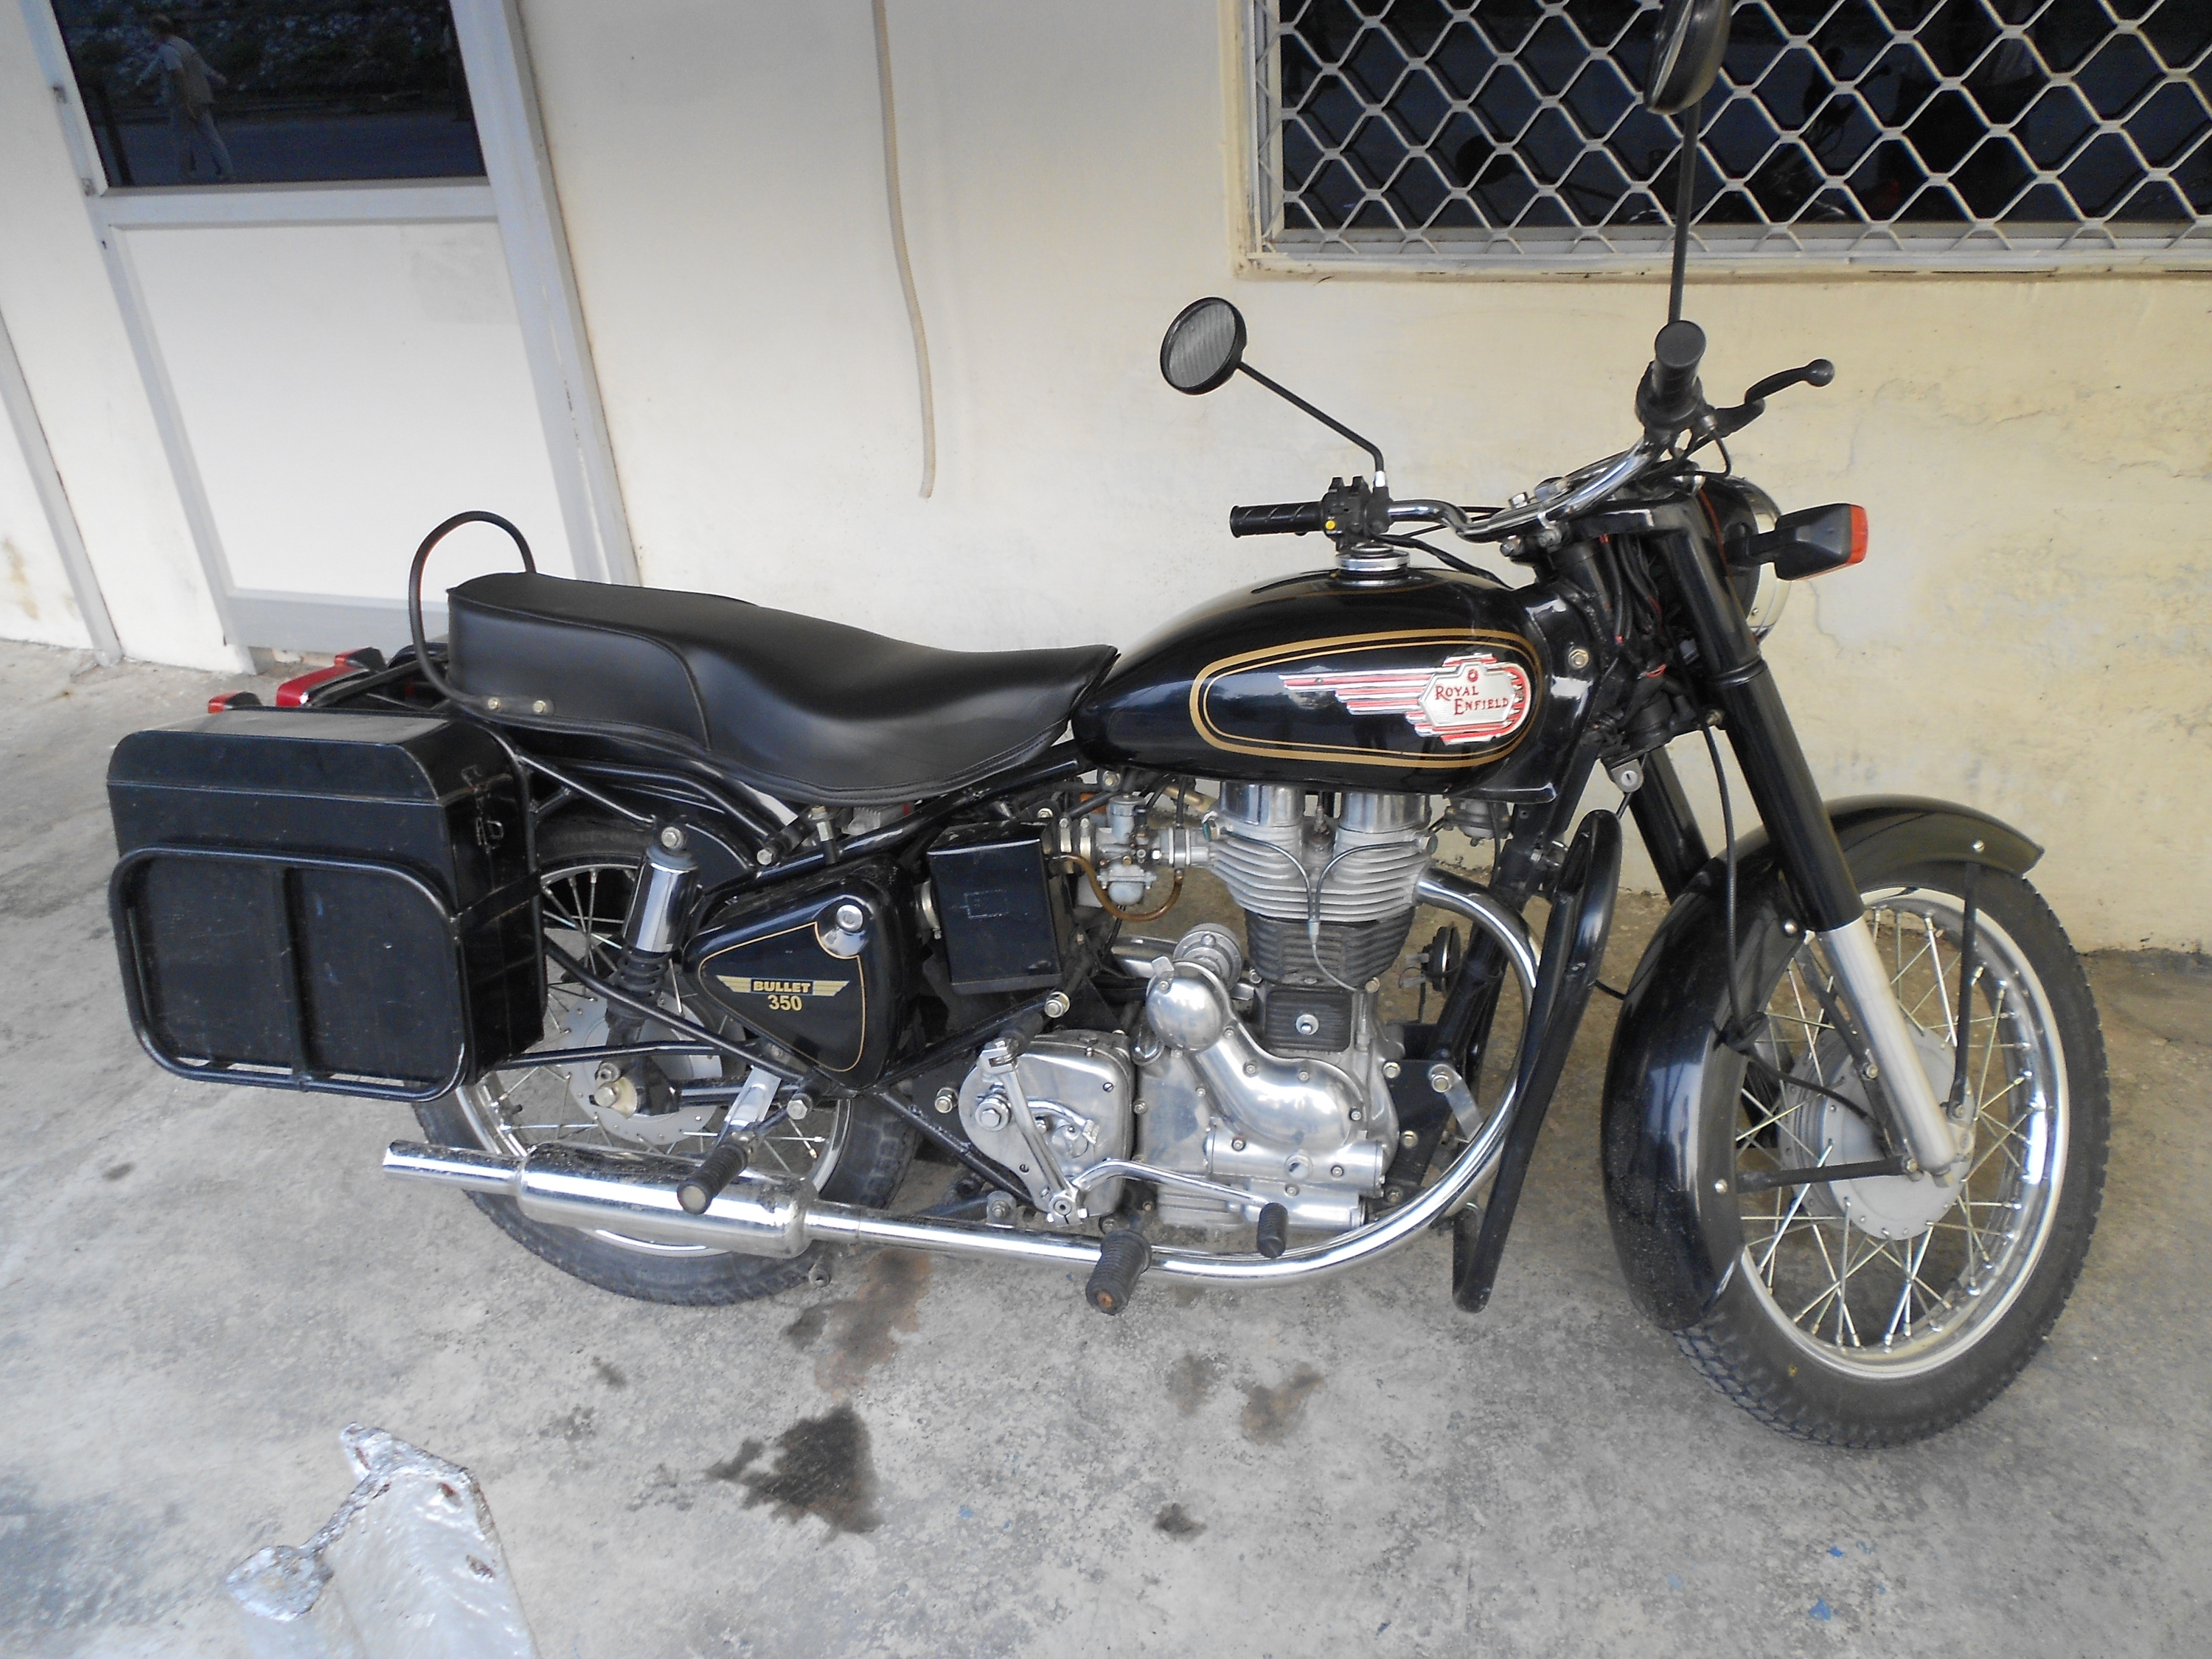 Royal Enfield Bullet 500 Deluxe AVL 2010 images #124037